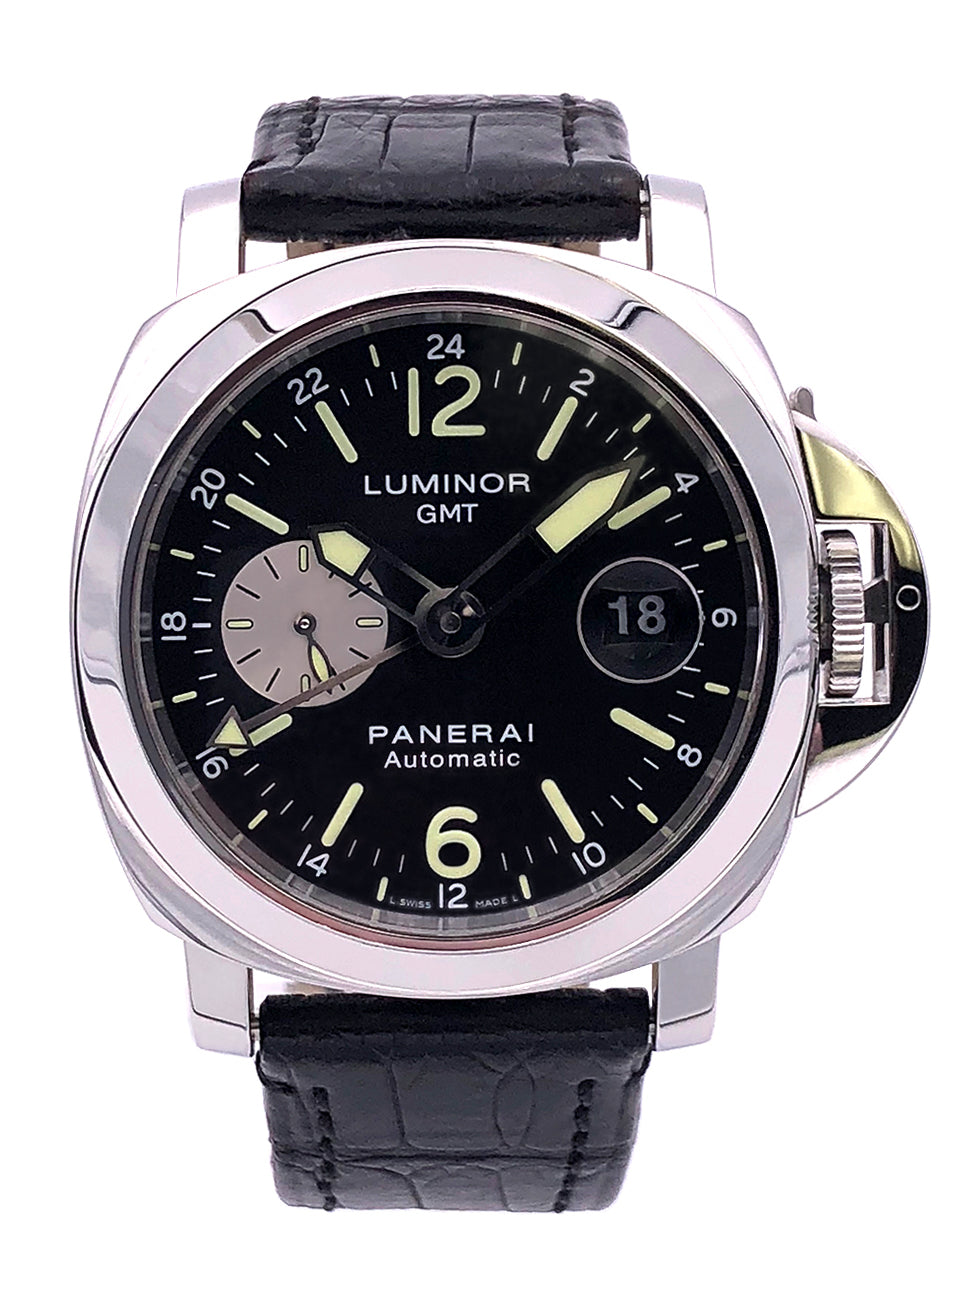 Panerai Luminor GMT Automatic 44m Stainless Steel Black Dial – Pam 088